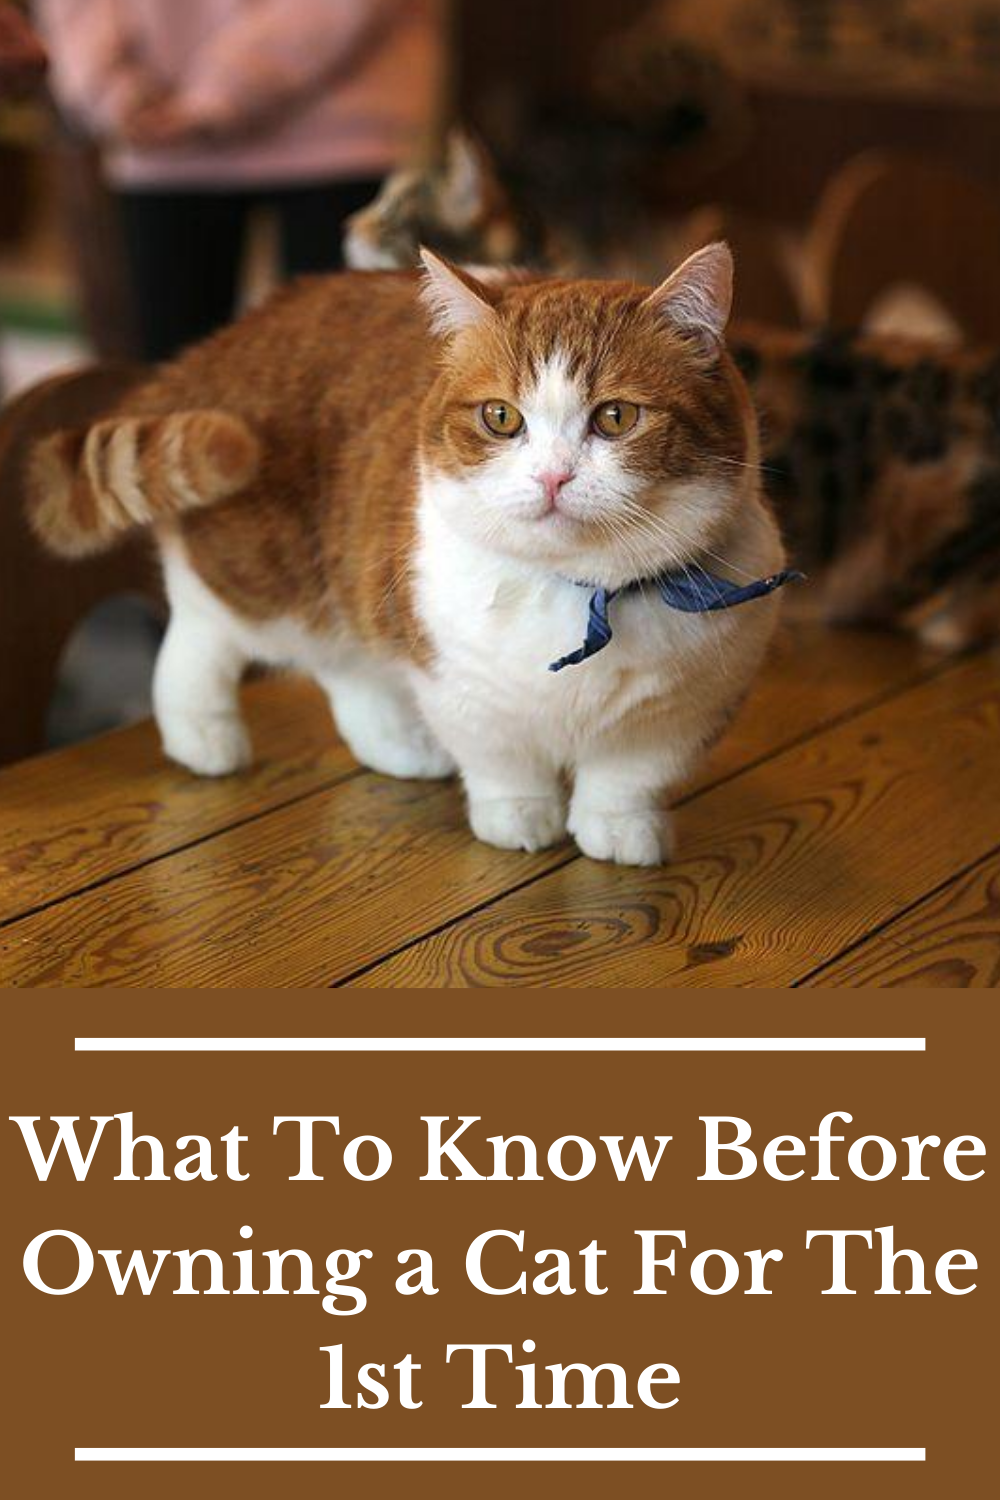 10 Rules To Follow If You Are Owning A Cat In 2020 Cats Owning A Cat First Time Cat Owner